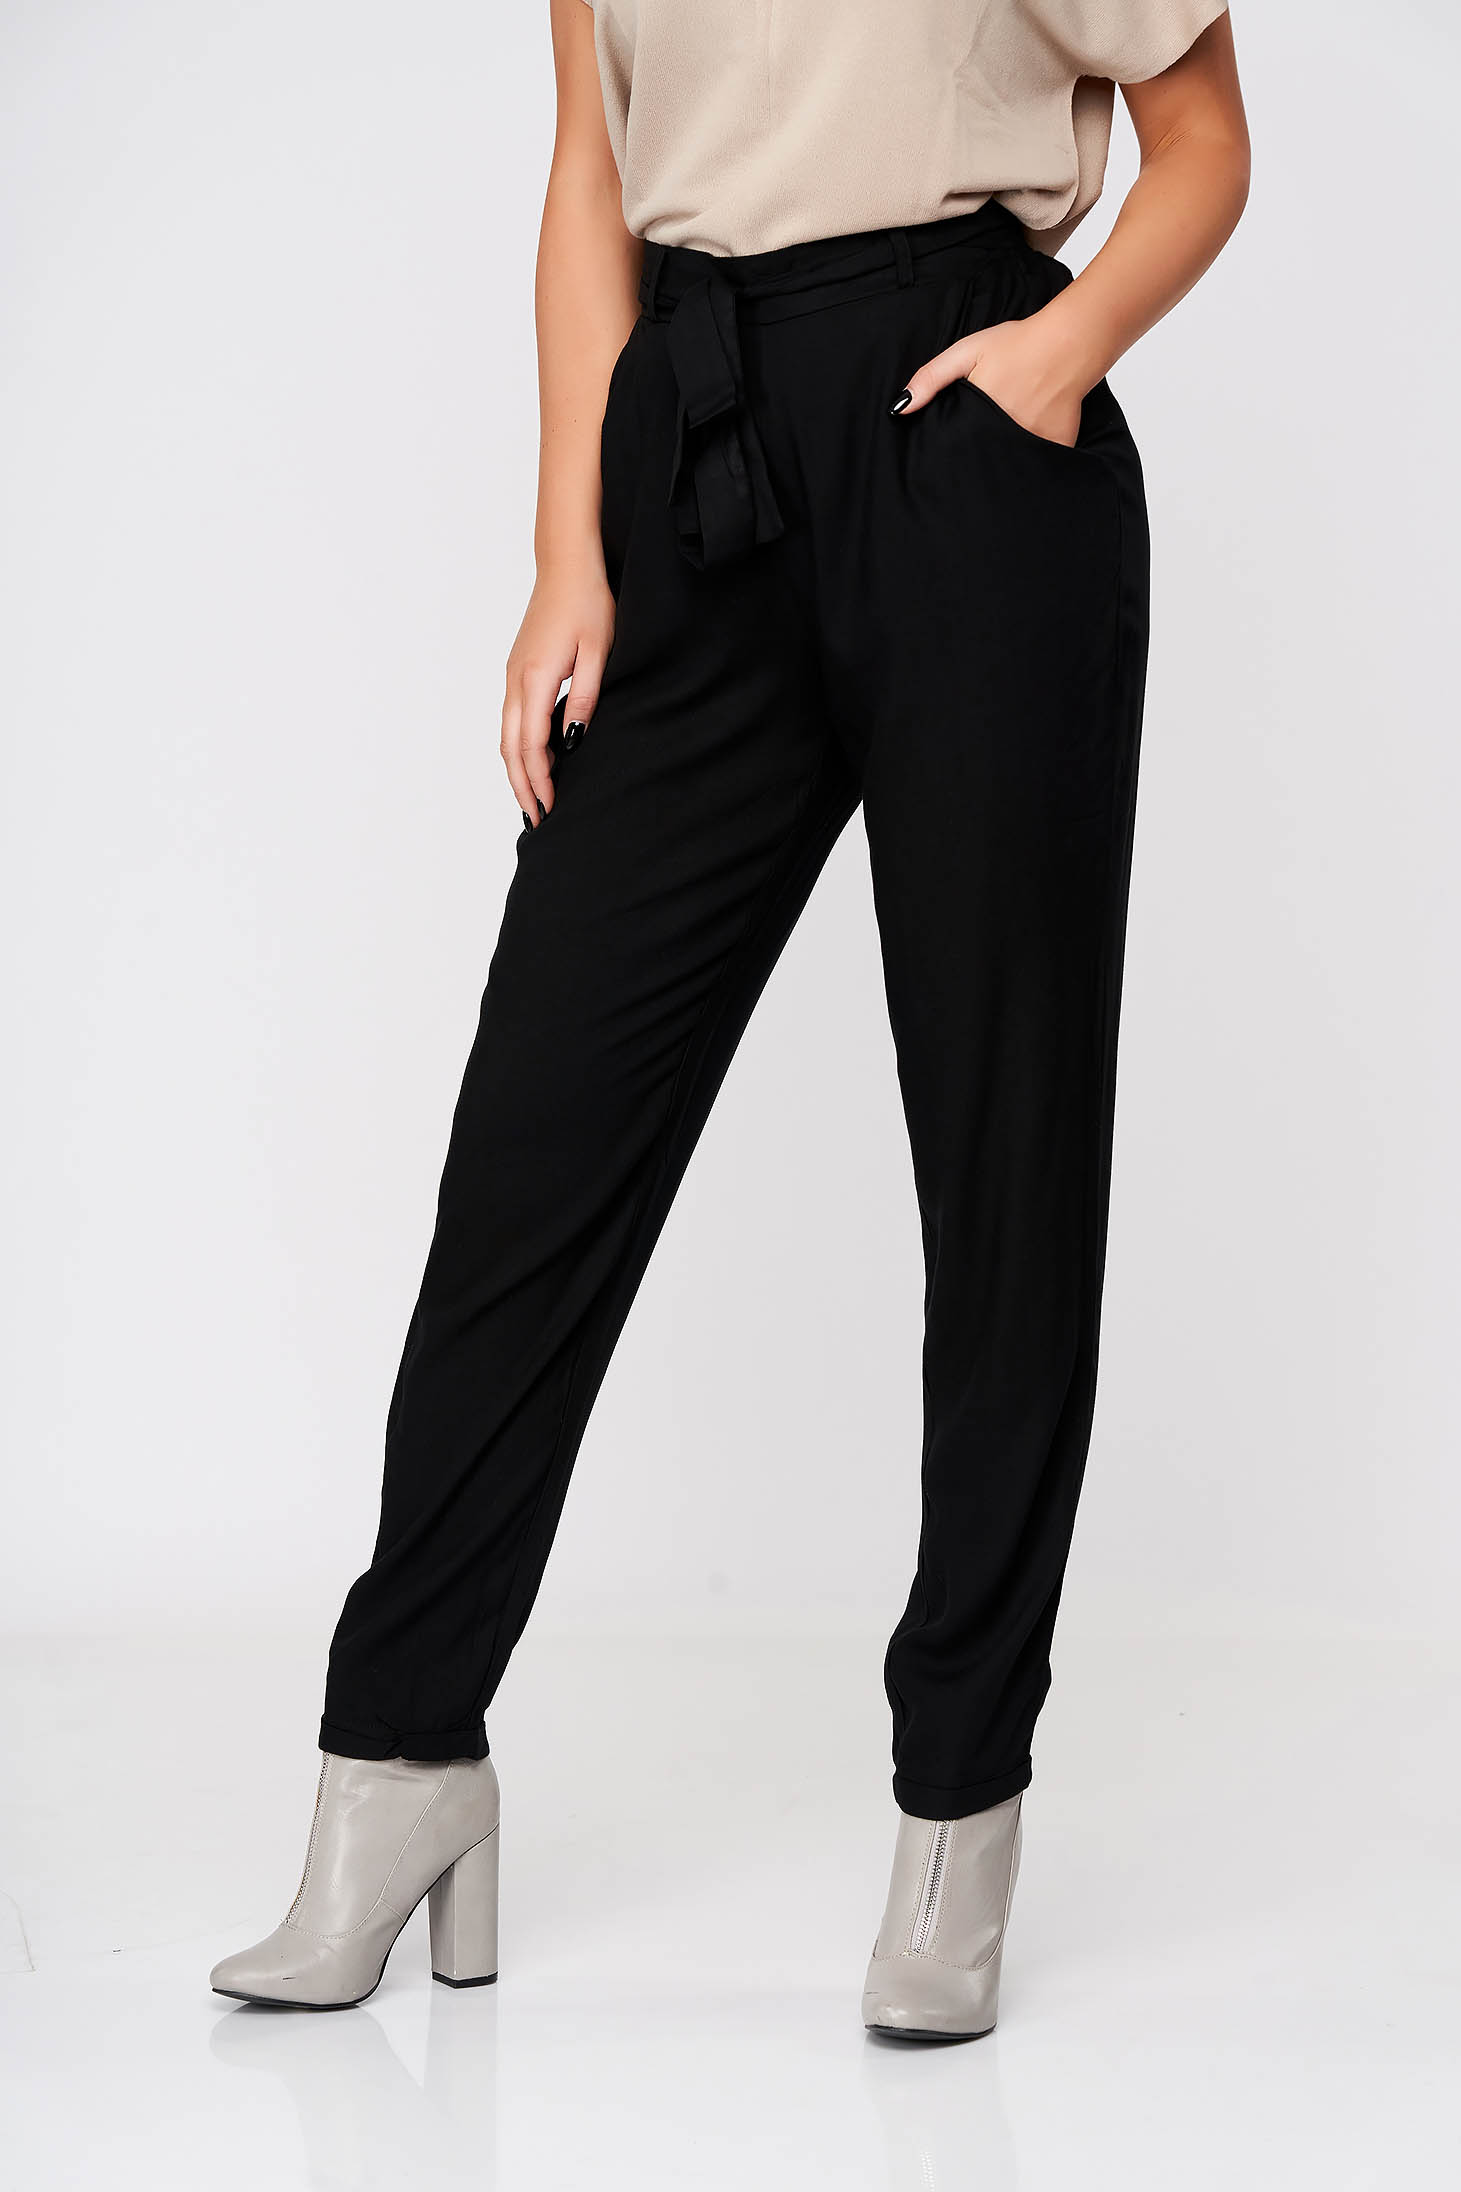 Black trousers casual conical with pockets thin fabric